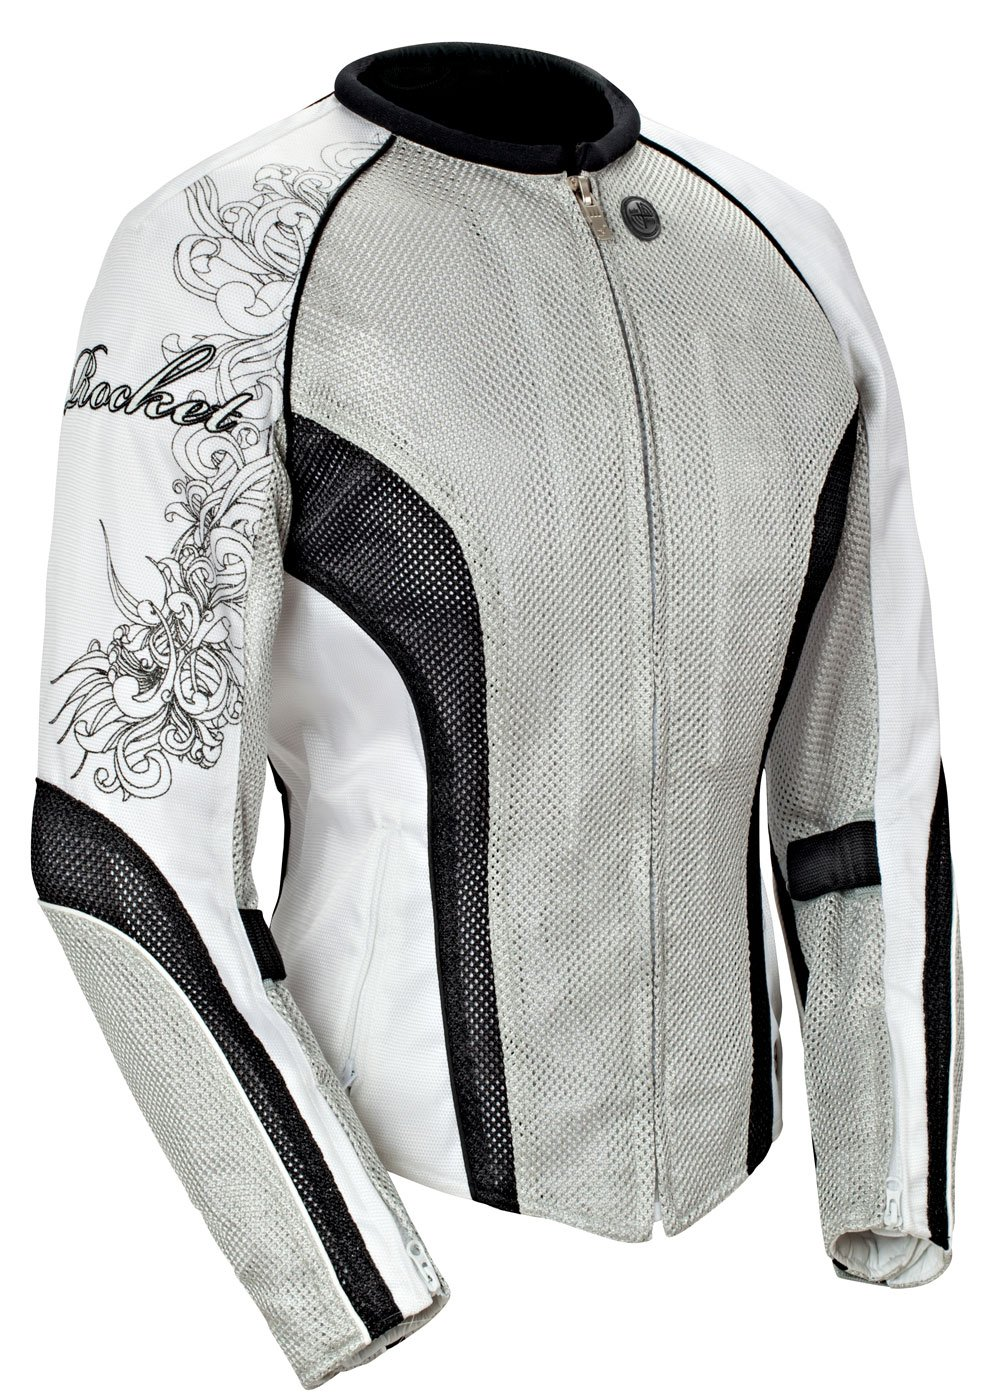 Black//Black, Large Joe Rocket Cleo 2.2 Womens Mesh Motorcycle Riding Jacket